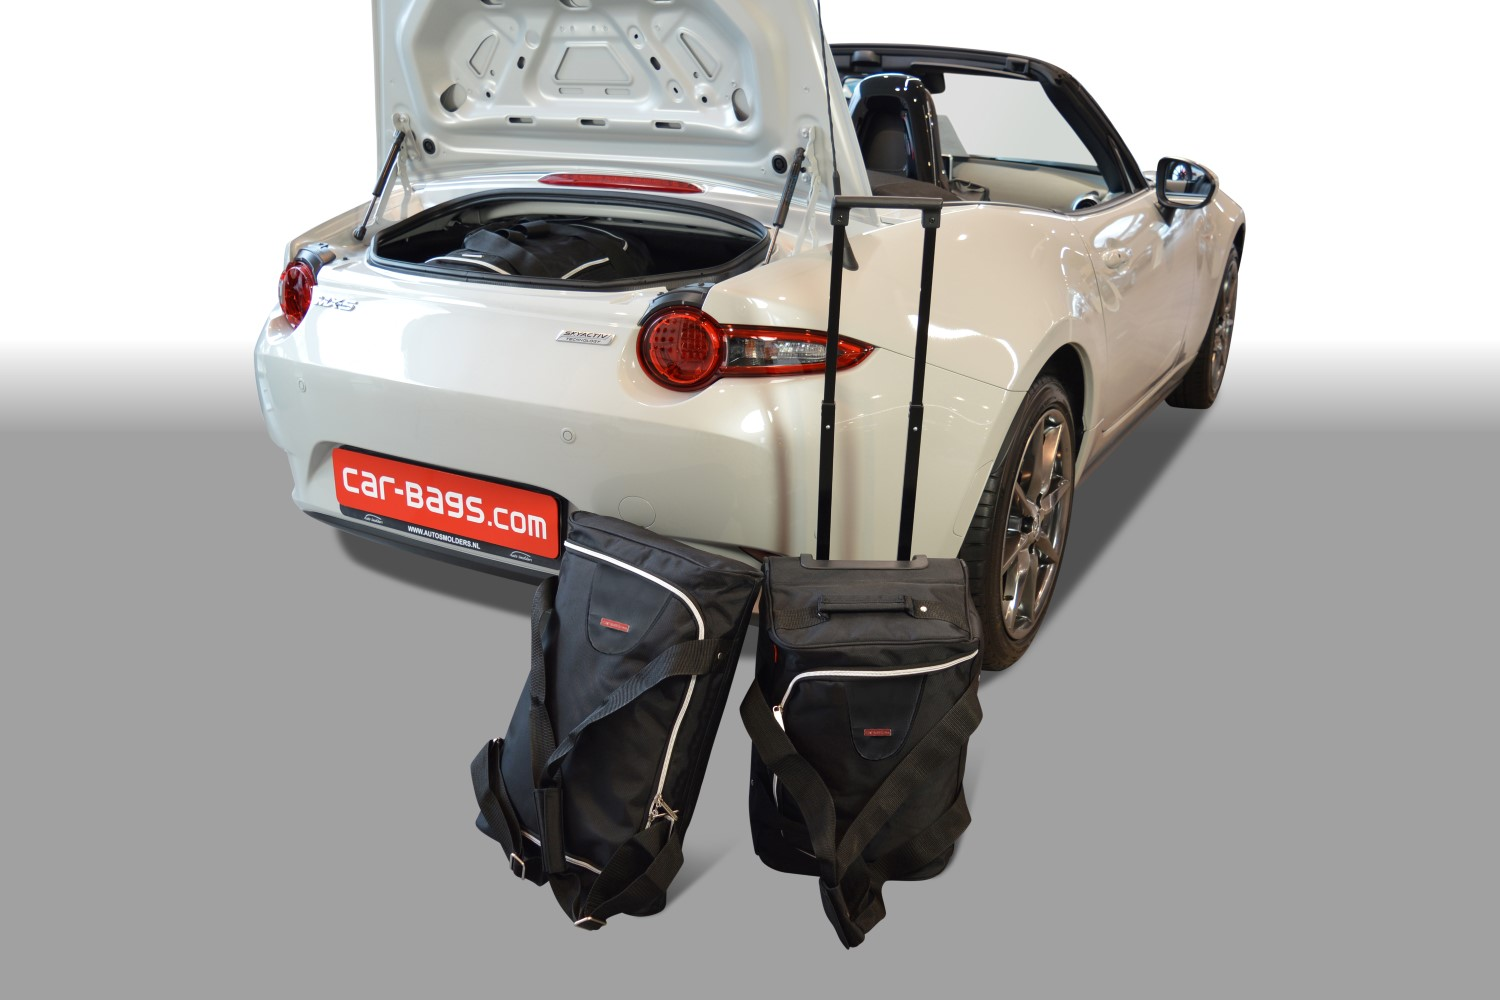 mx 5 mazda mx 5 nd 2015 present car bags travel bag set. Black Bedroom Furniture Sets. Home Design Ideas